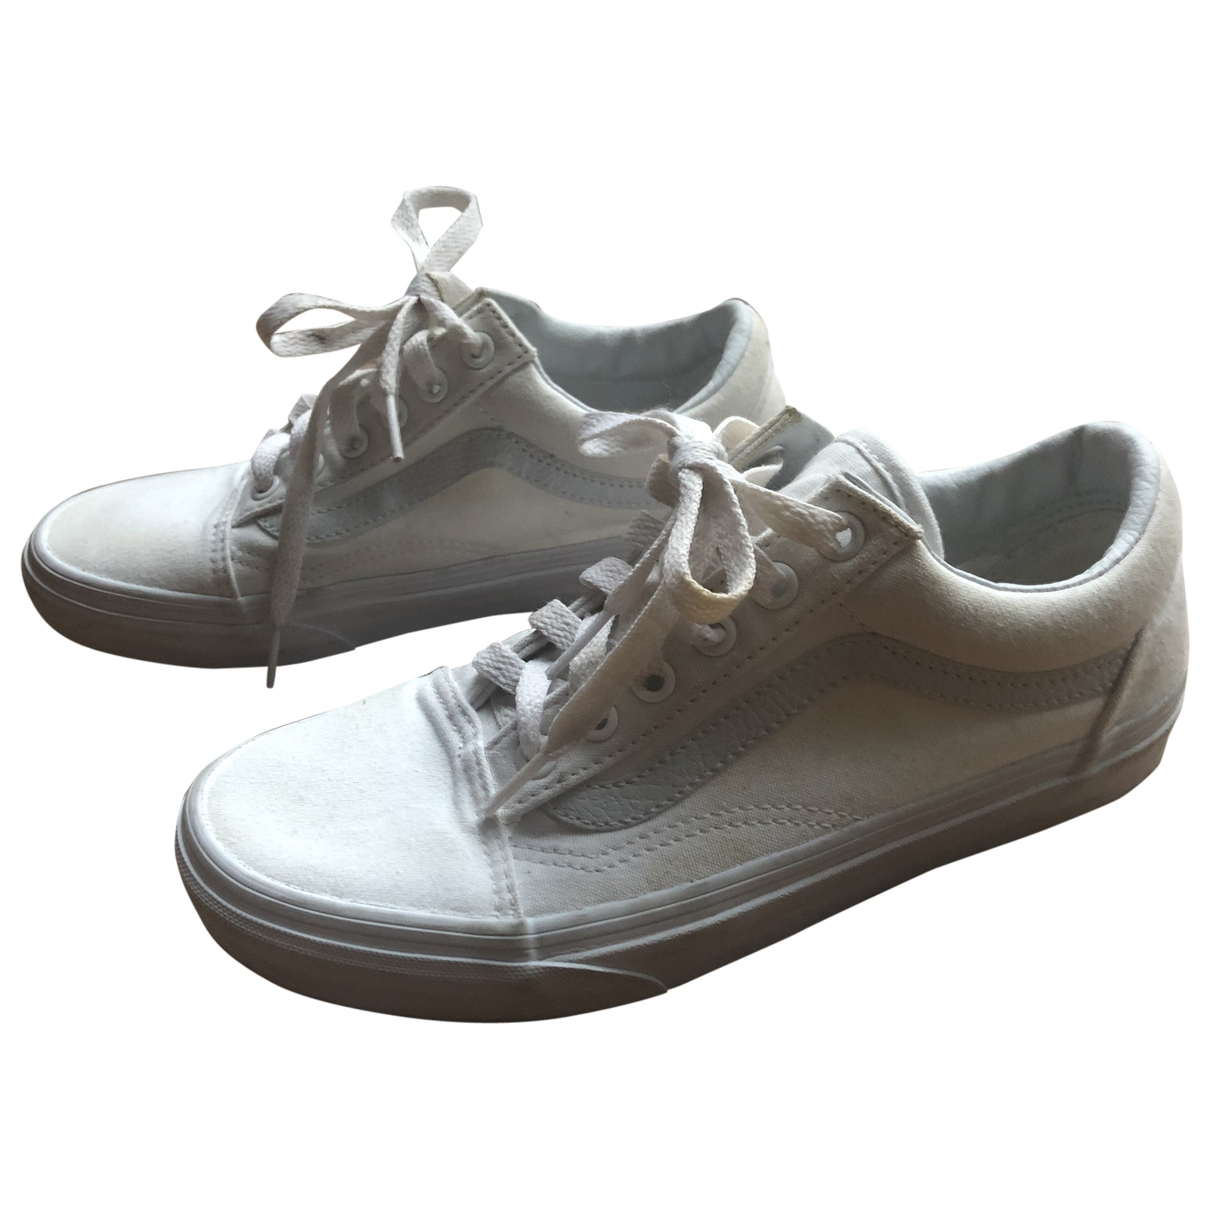 Vans \N Sneakers in  Weiss Leinen